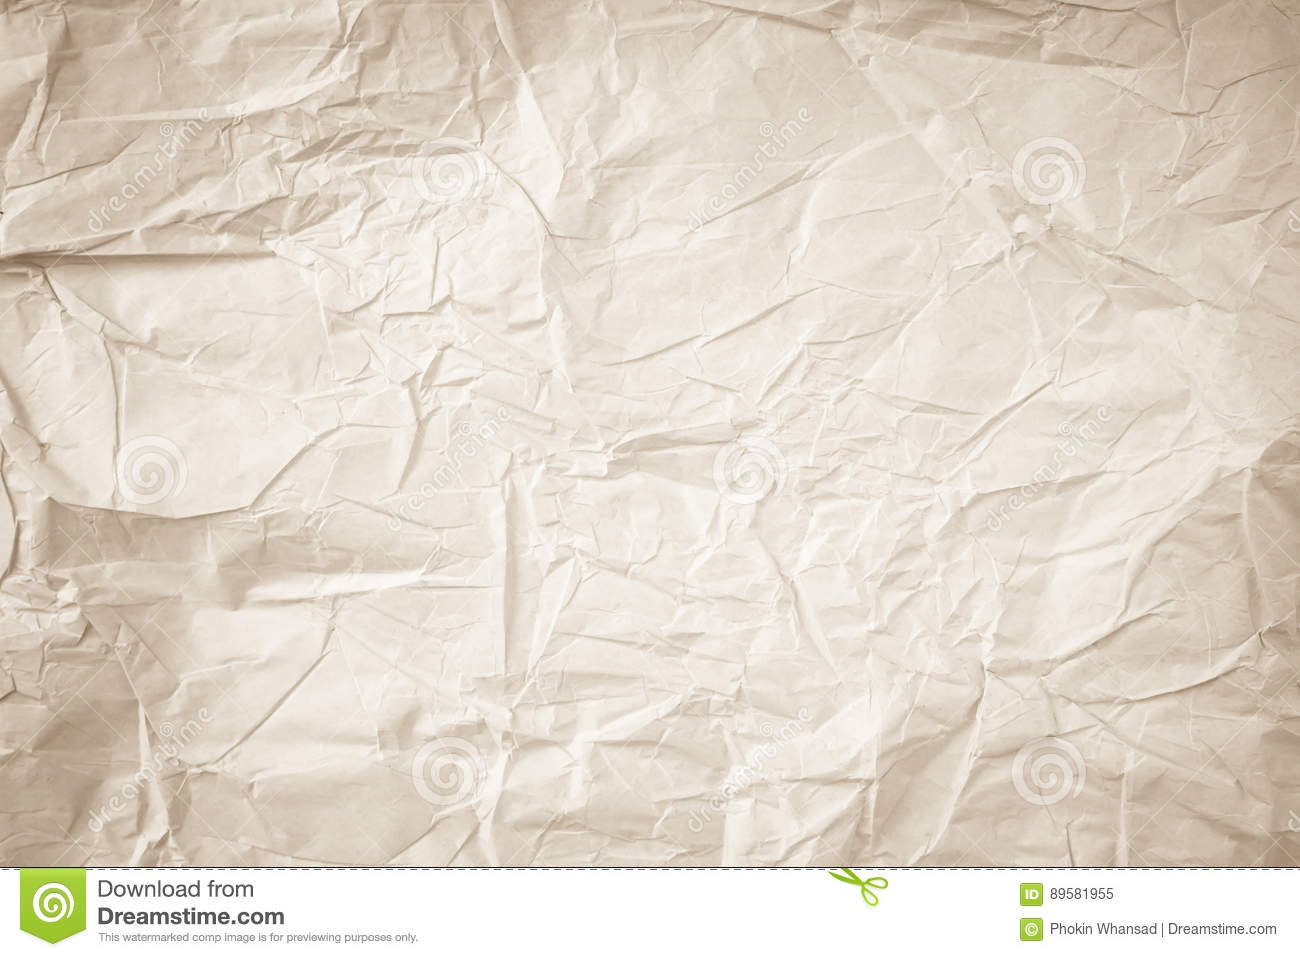 natural recycled paper texture.newspaper texture blank paper old